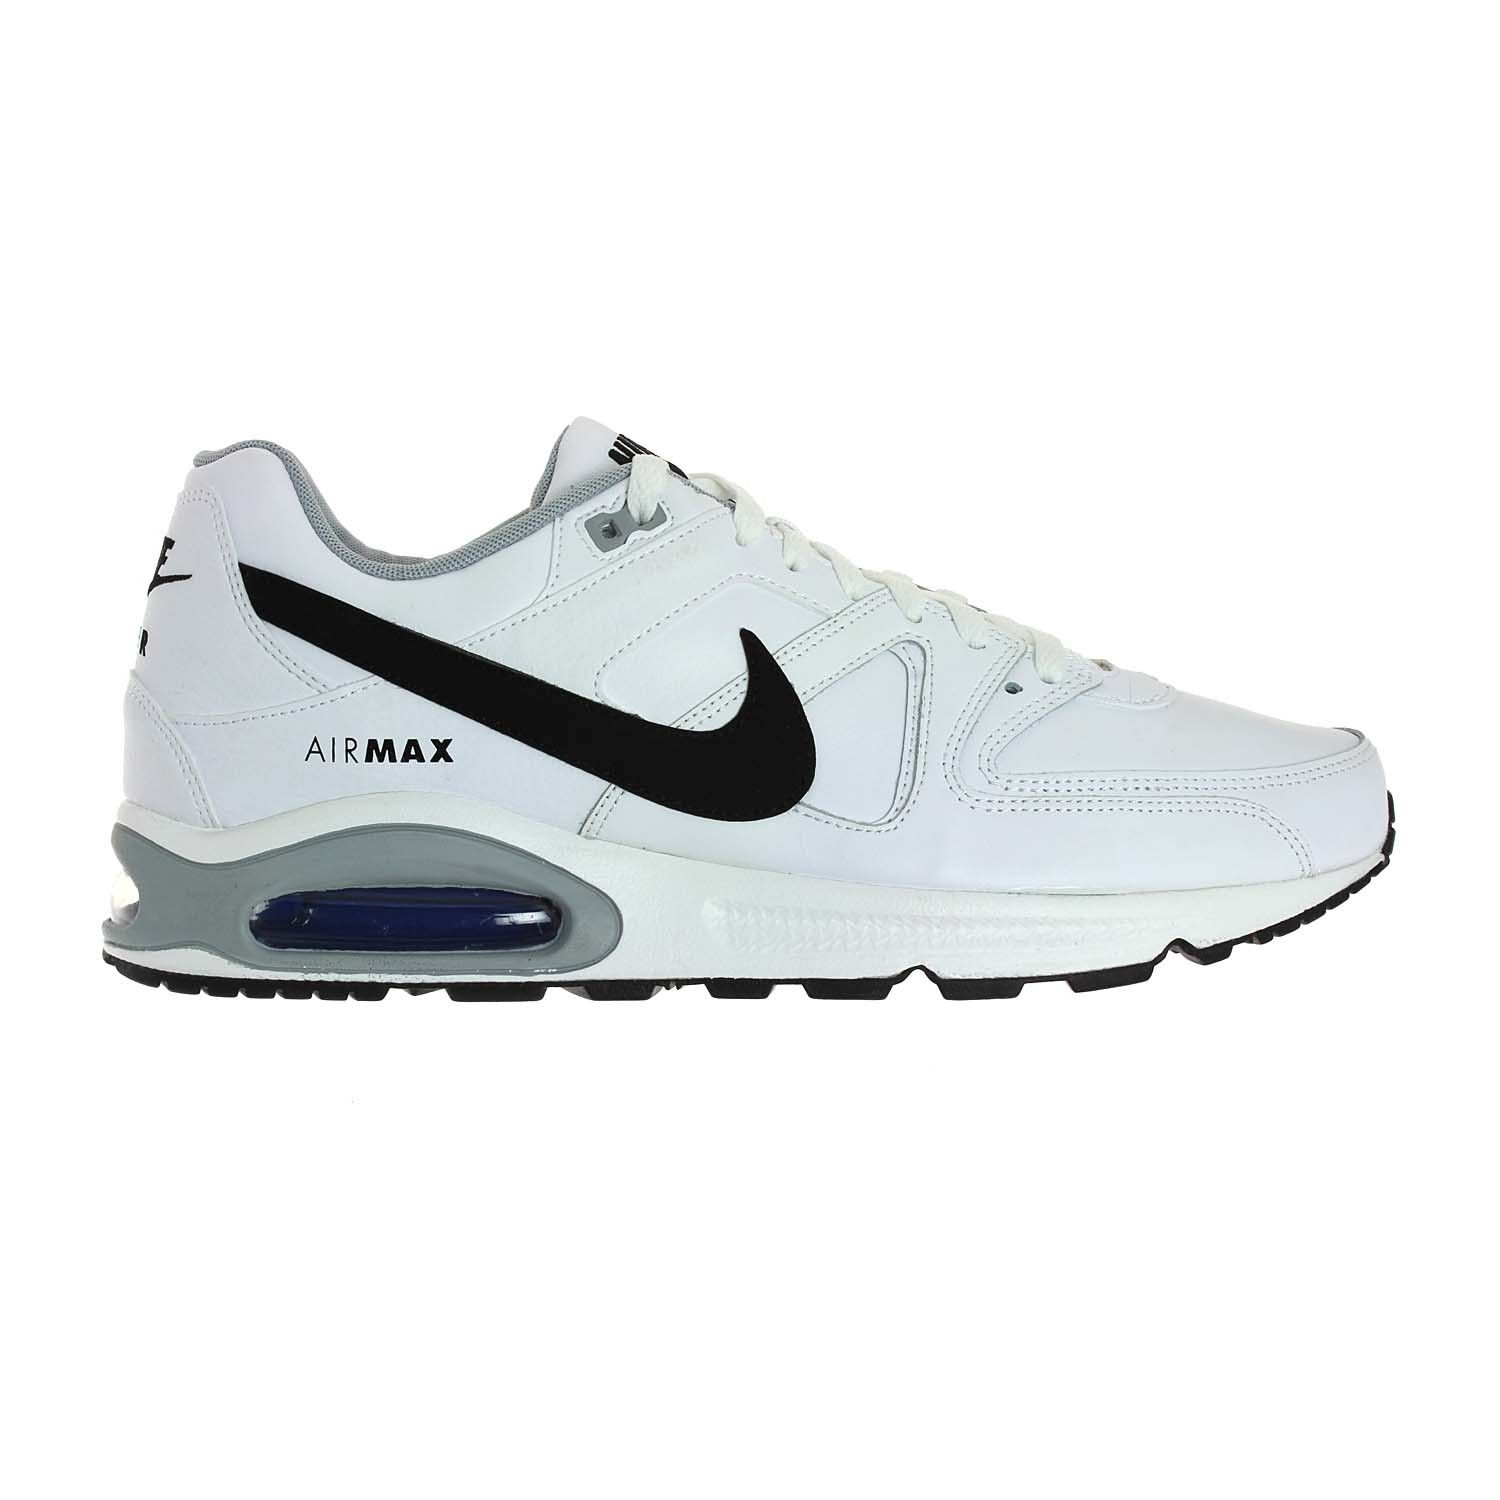 nike air max command leather cool grey / white - team red color